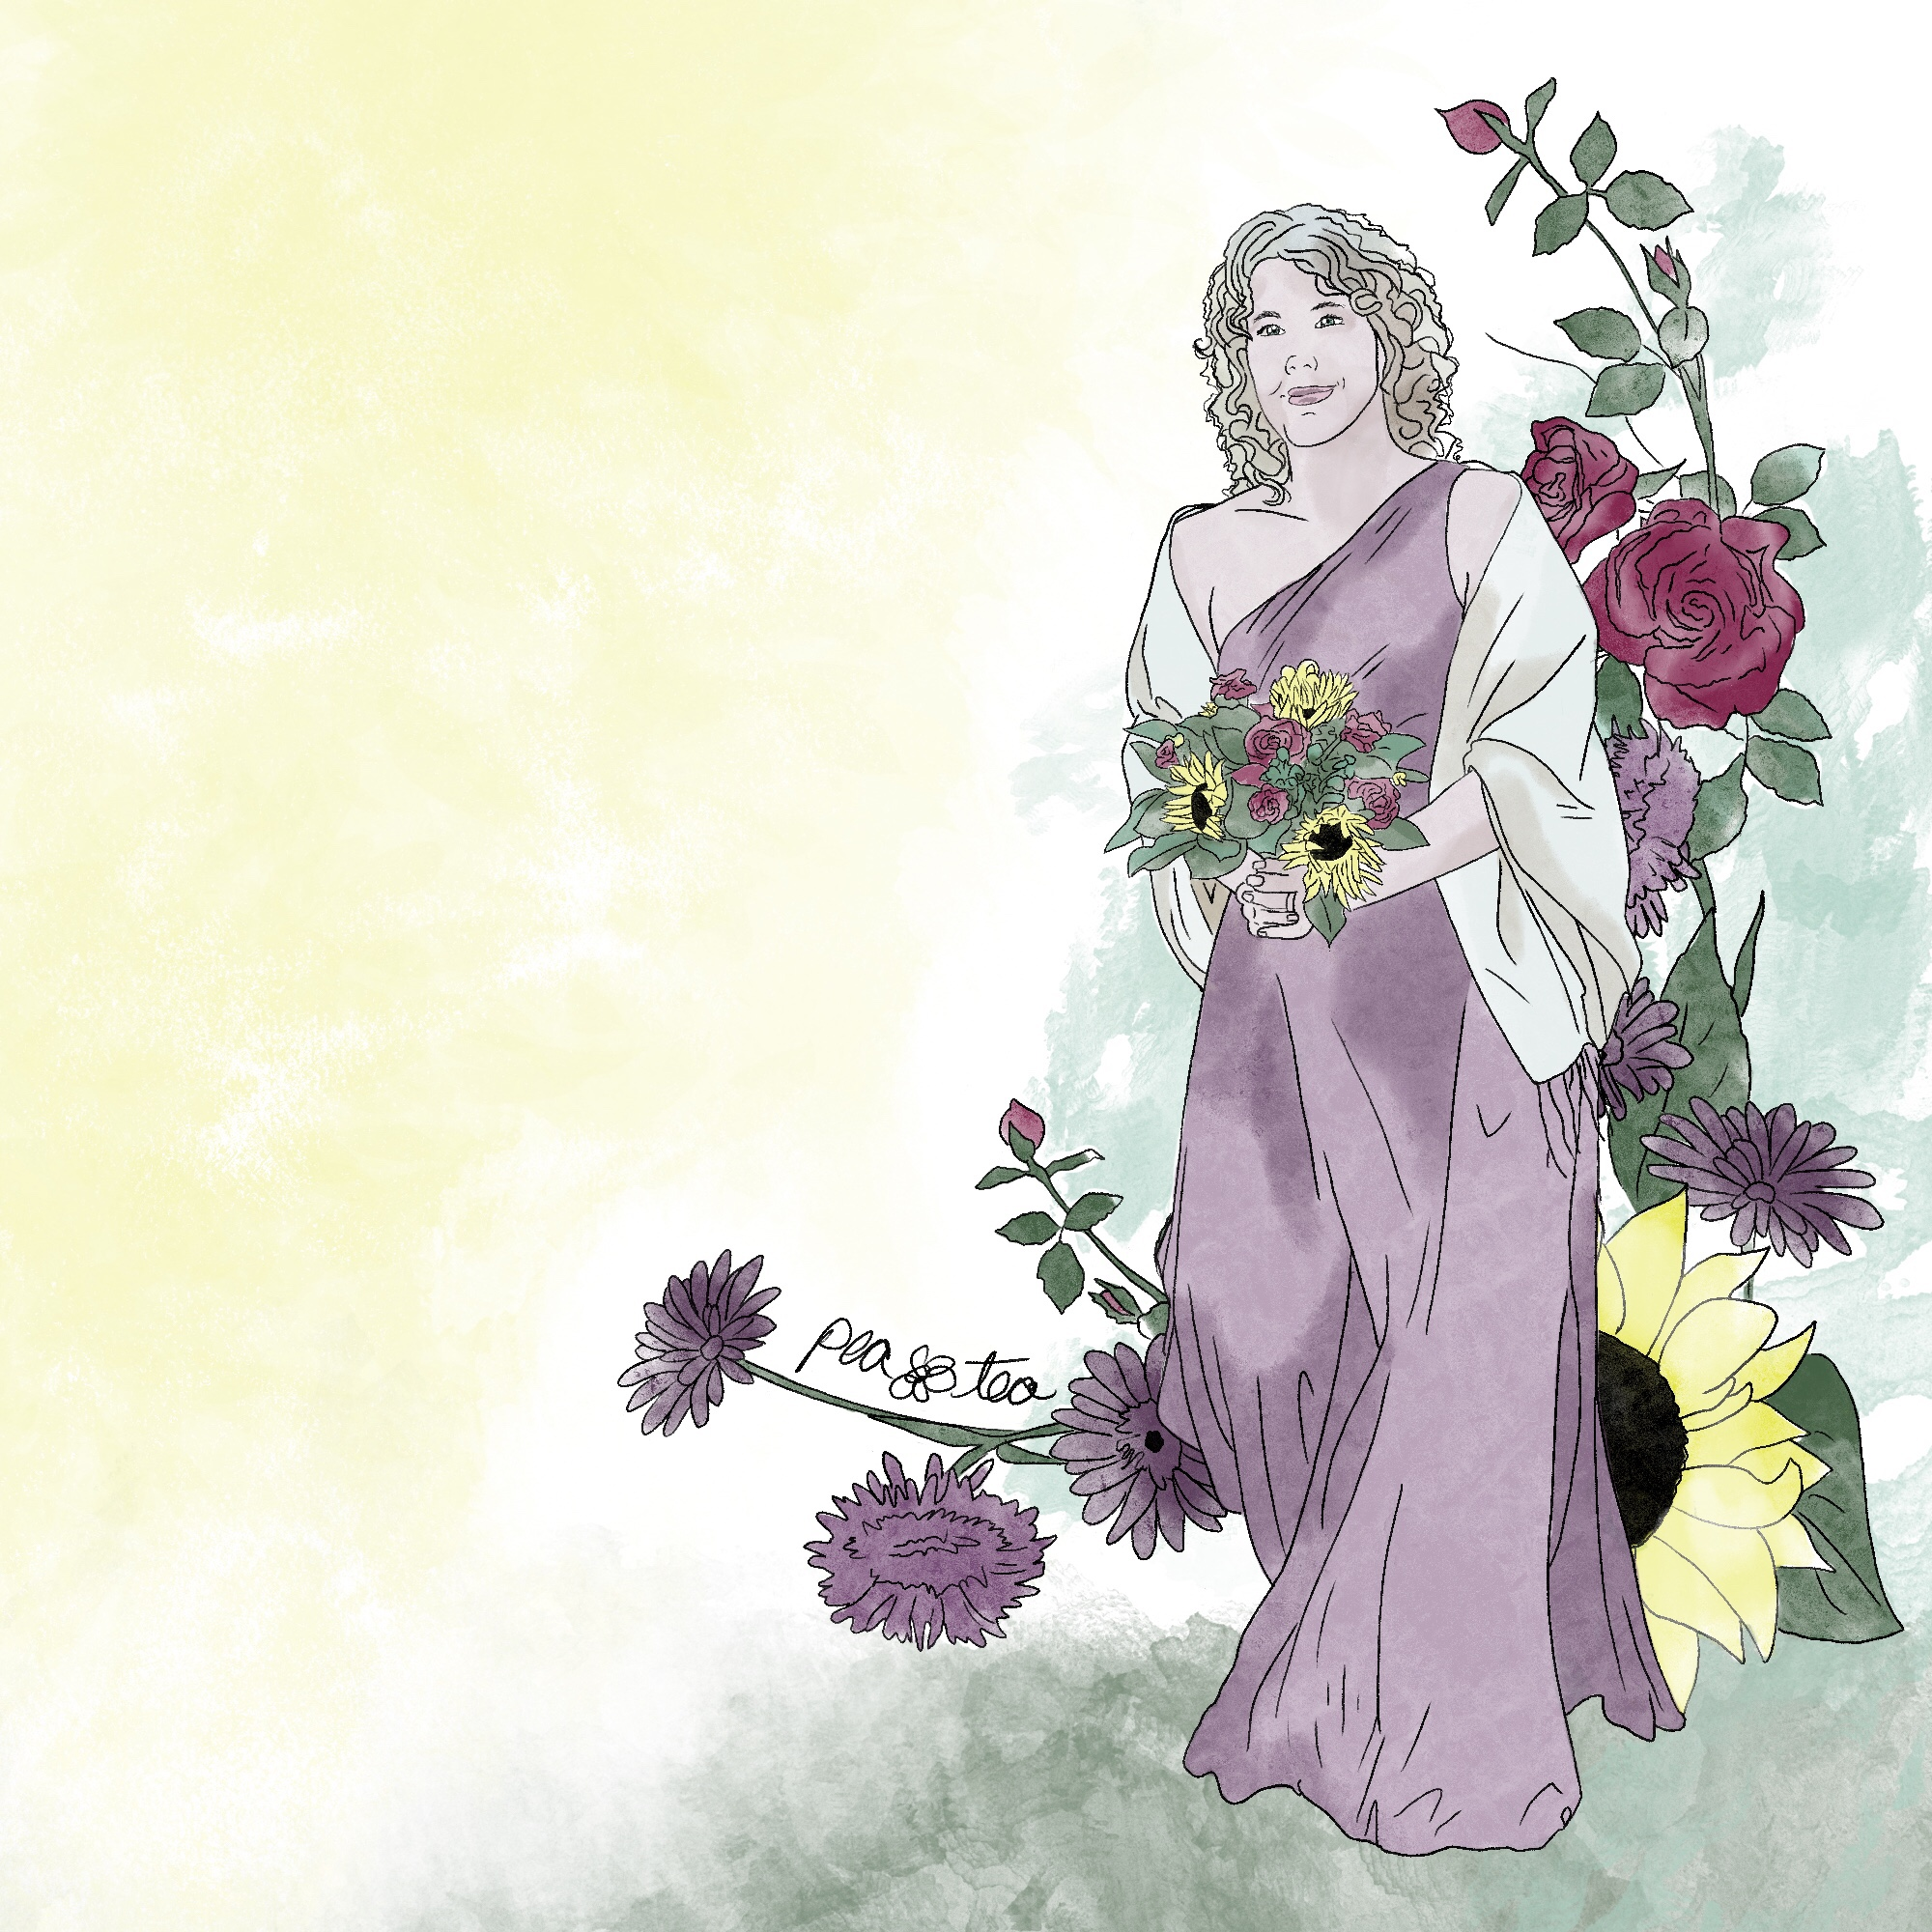 a watercolor and colored pencil piece of a beautiful woman with dark blonde curls is wearing a long purple gown and a cream fringe shawl. She's carrying a bouquet of sunflowers and red roses. She's framed by more drawings of purple mums, red roses, and sunflowers.